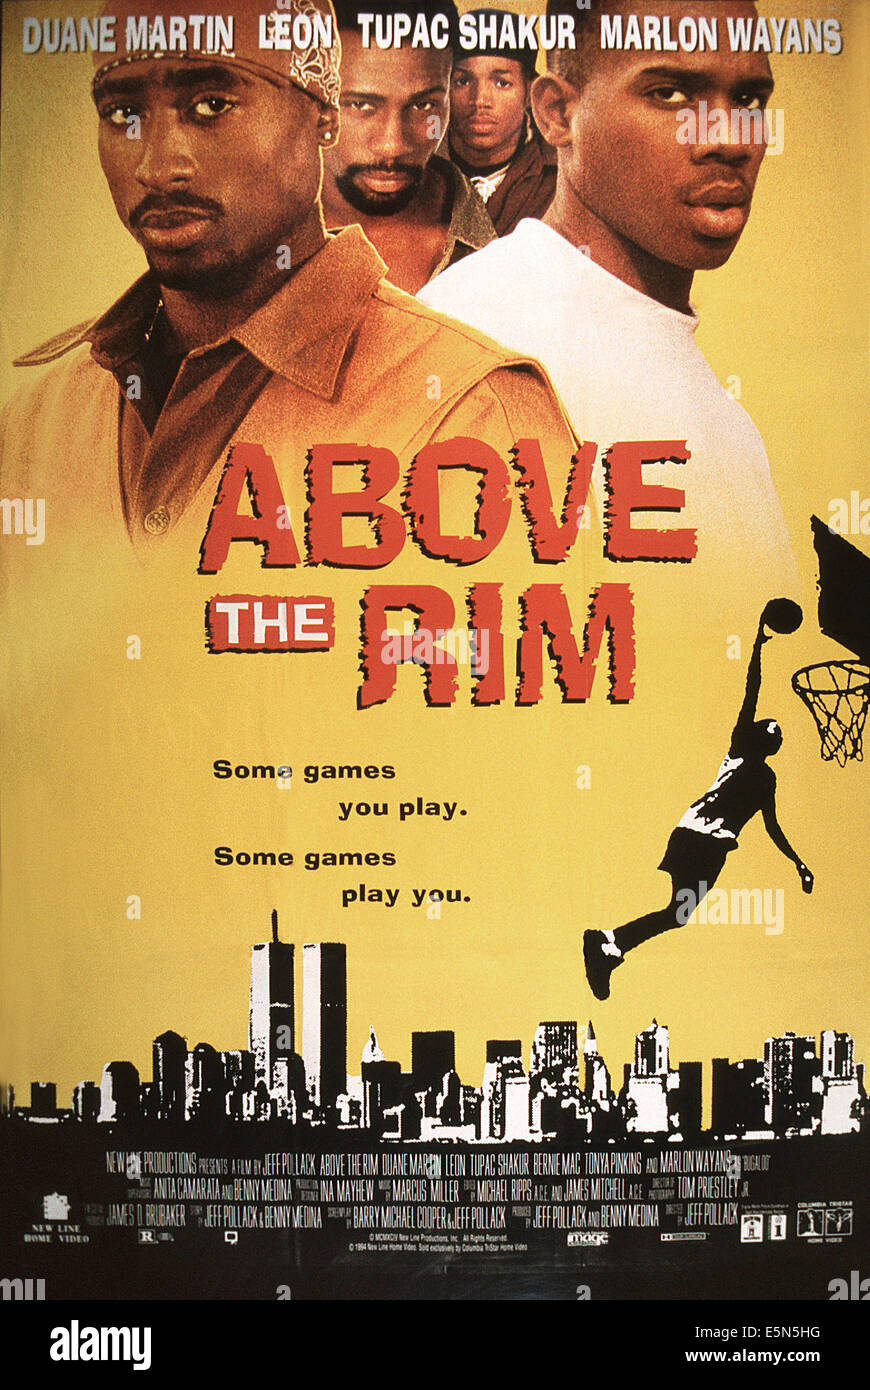 ABOVE THE RIM US Poster From Left Tupac Shakur Leon Marlon